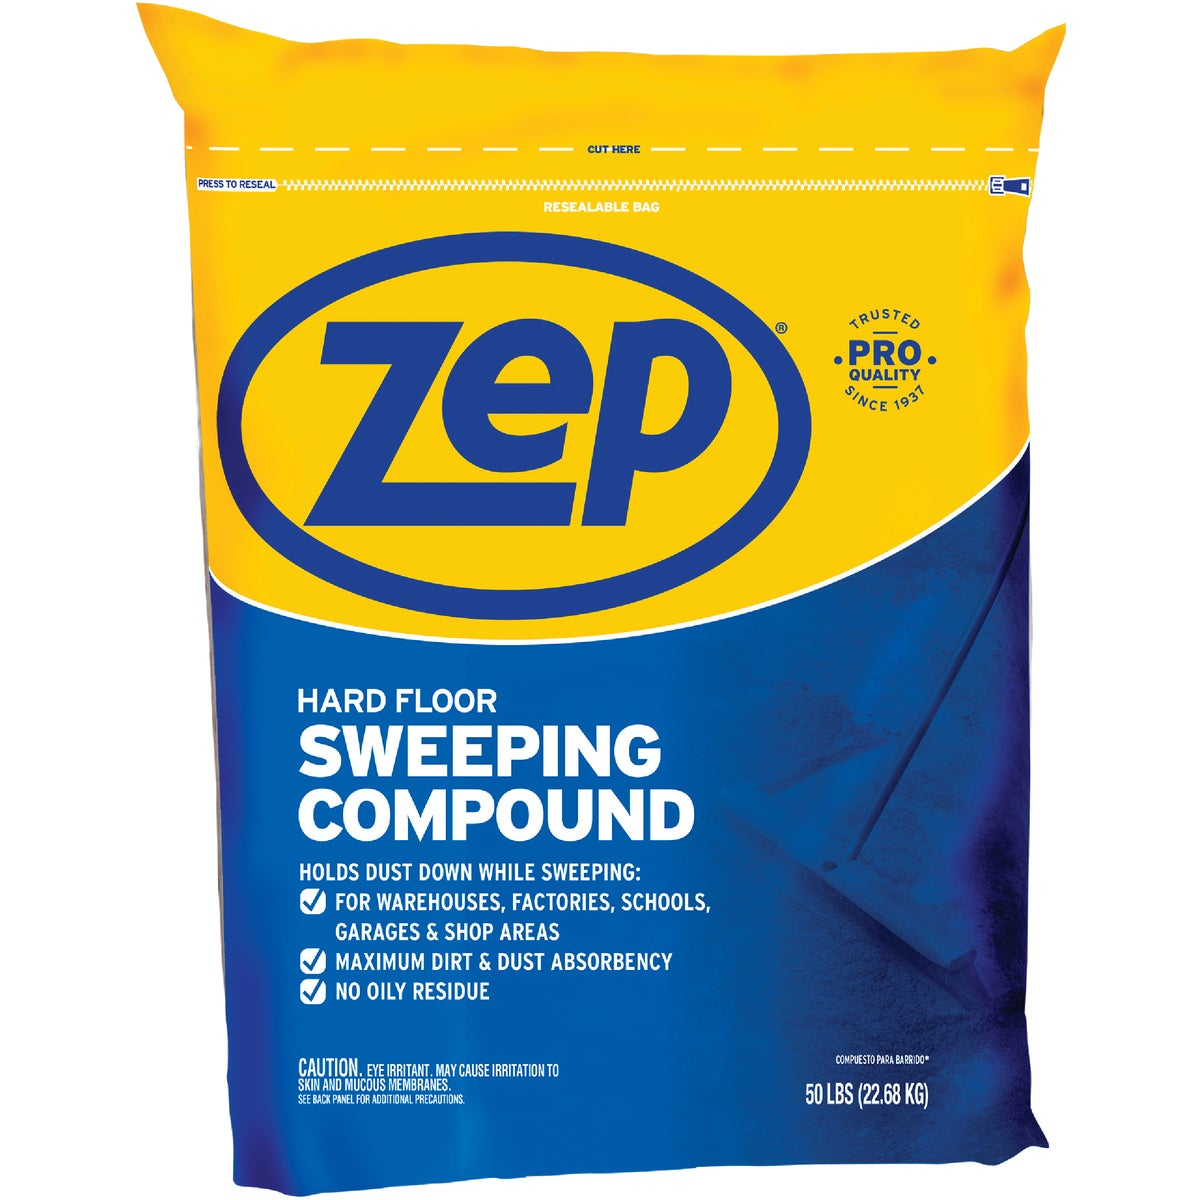 50LB SWEEPING COMPOUND - HDSWEEP50 by Zep Enforcer Inc